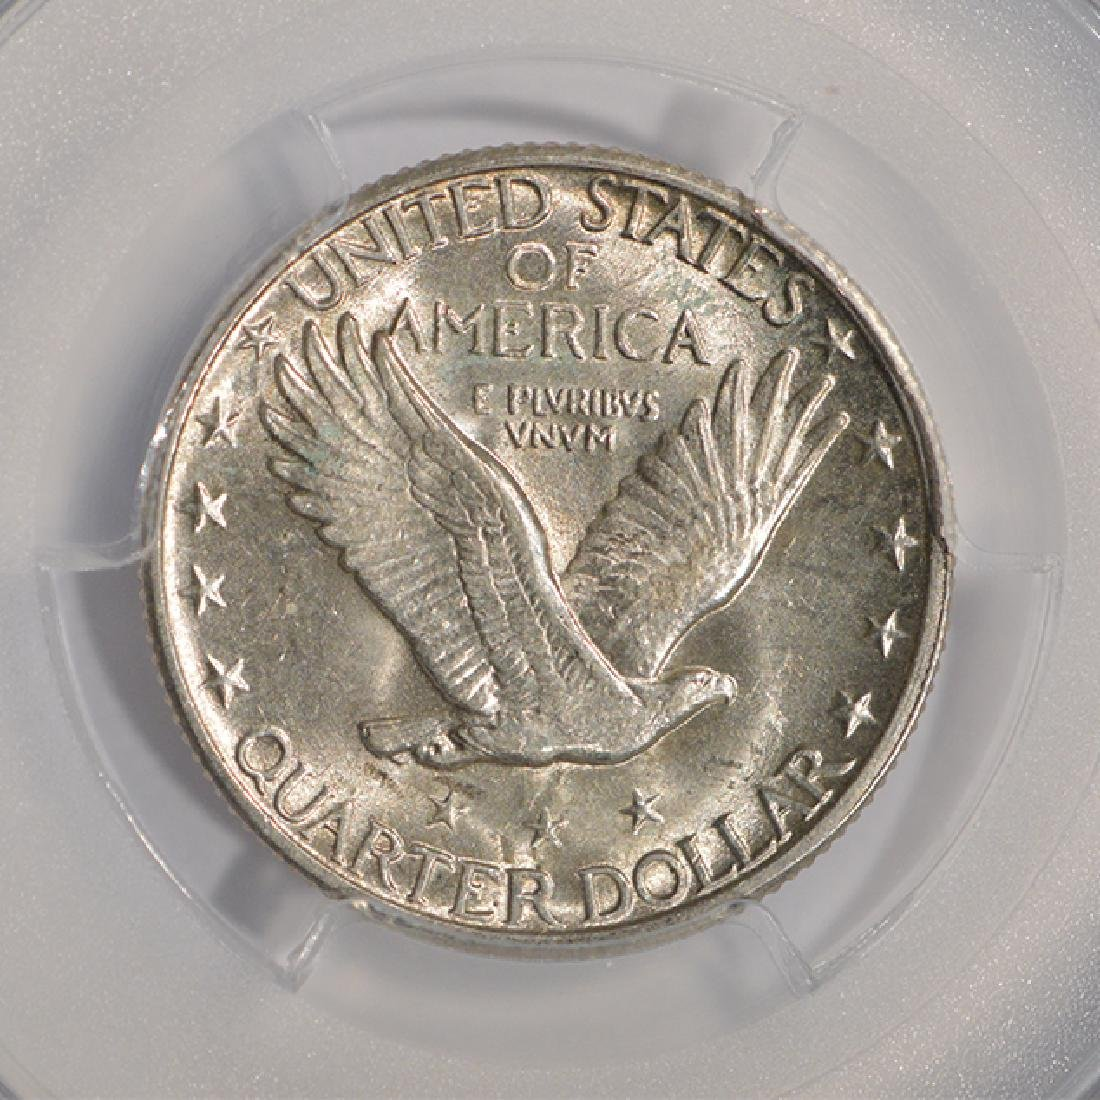 1930 Standing Liberty Quarter Coin PCGS MS63 - 4